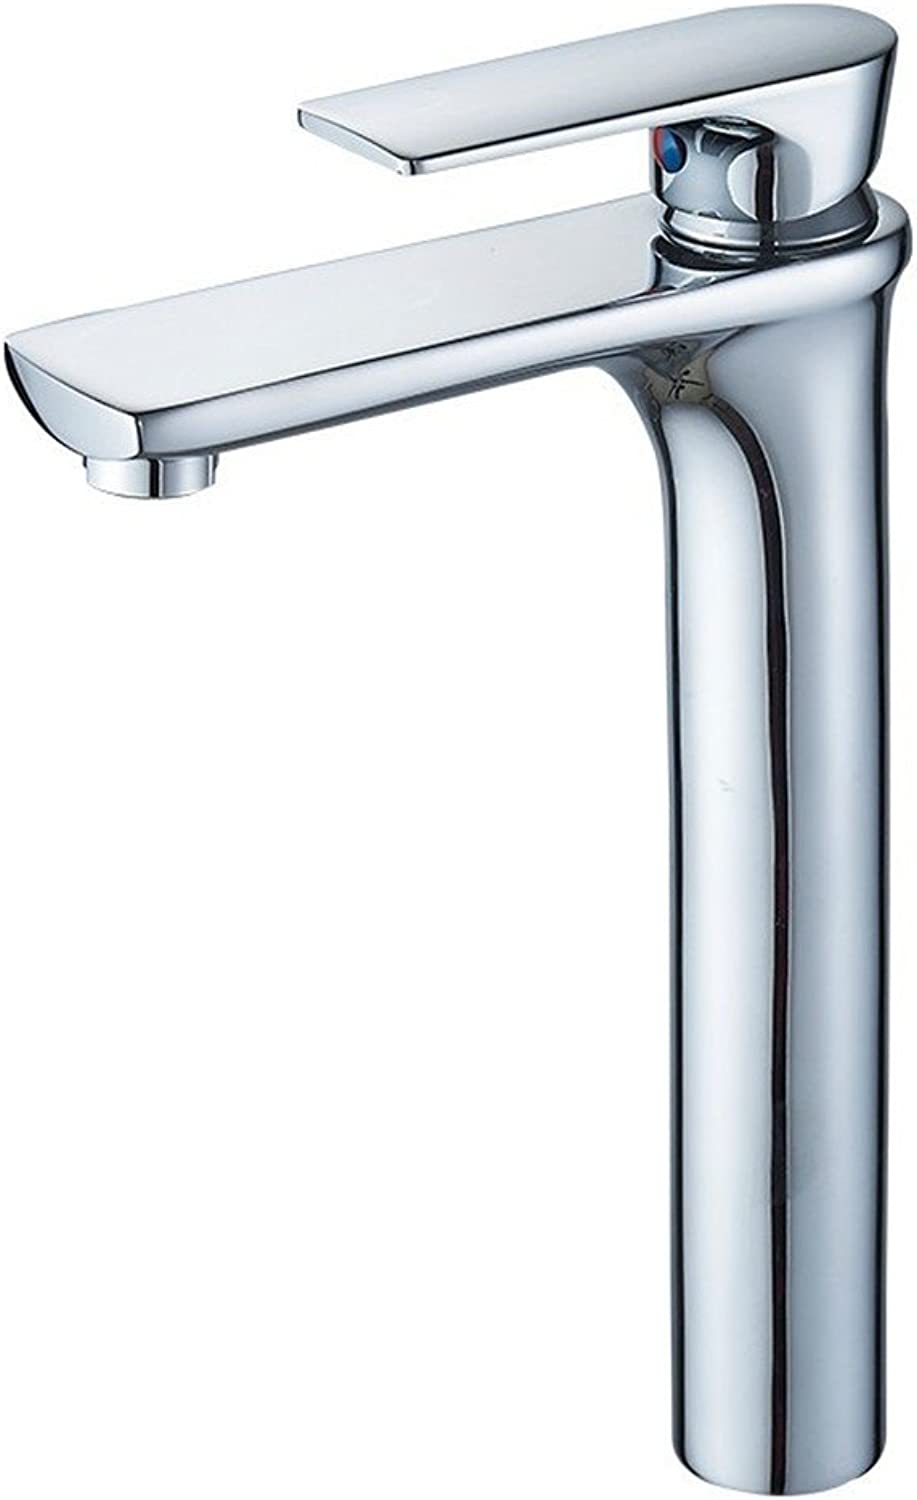 Copper Faucet All Copper Height Faucet hot and Cold wash Basin Faucet Above Counter Basin, MP9006